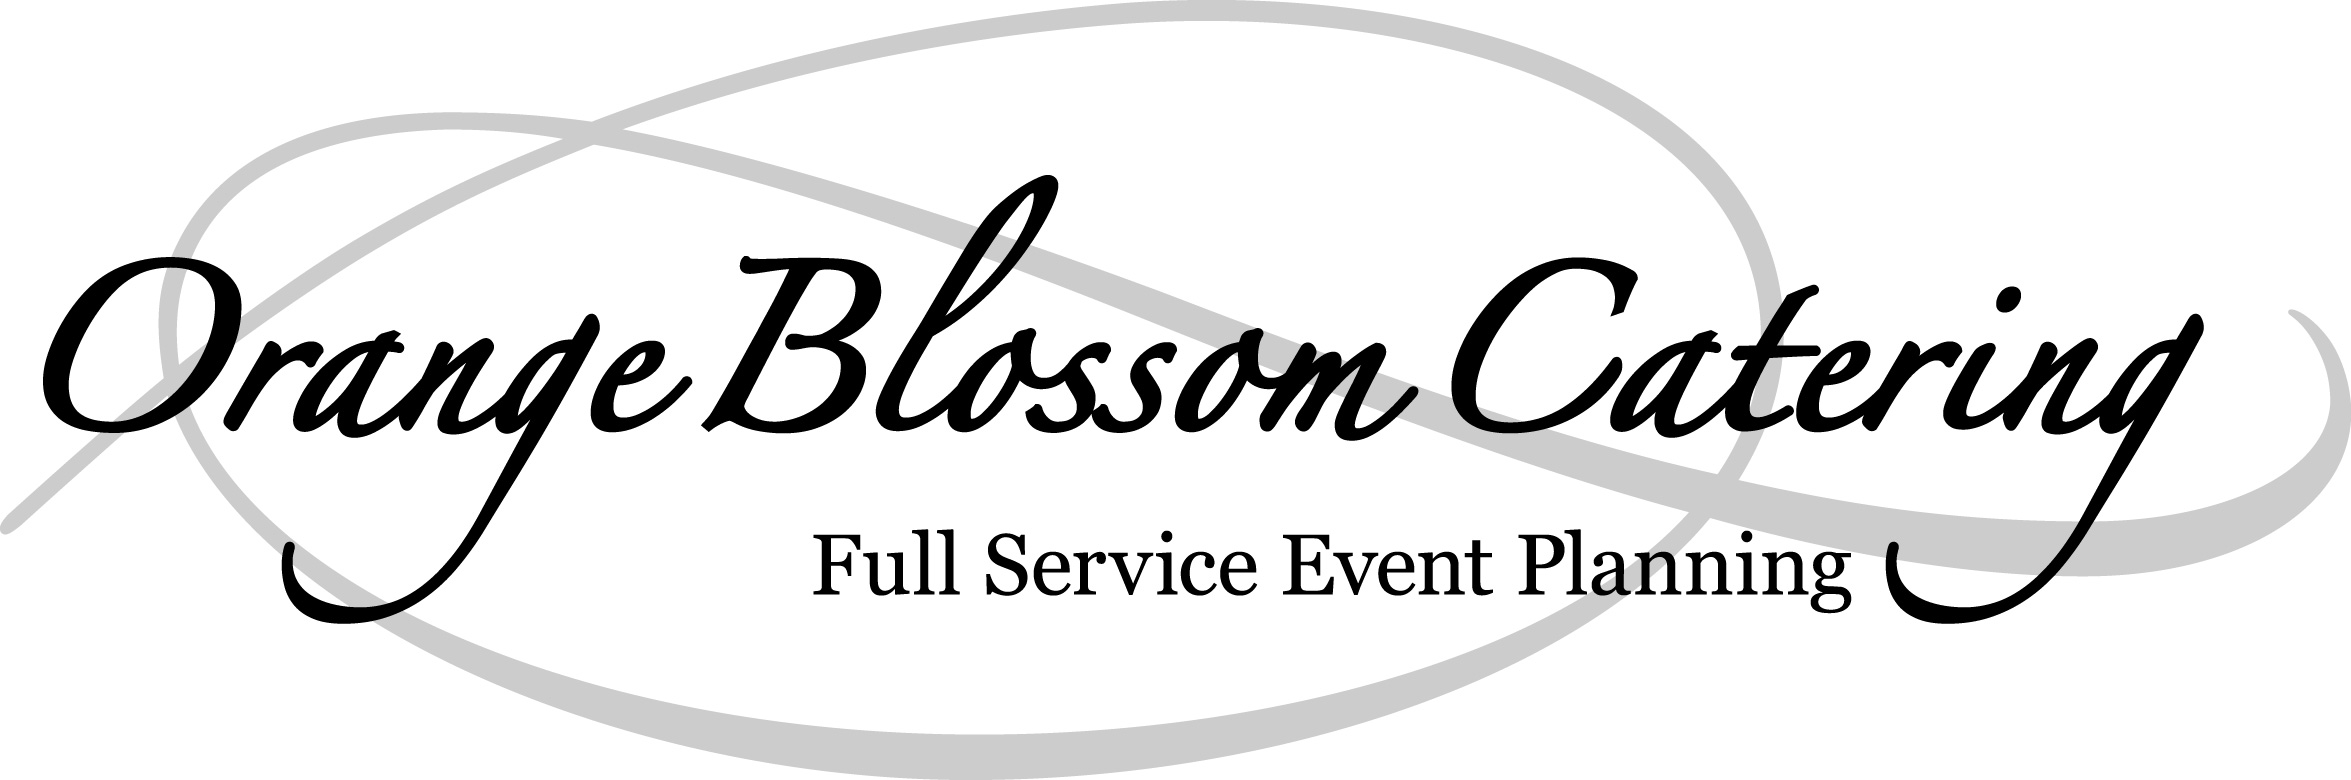 Orange Blossom Catering